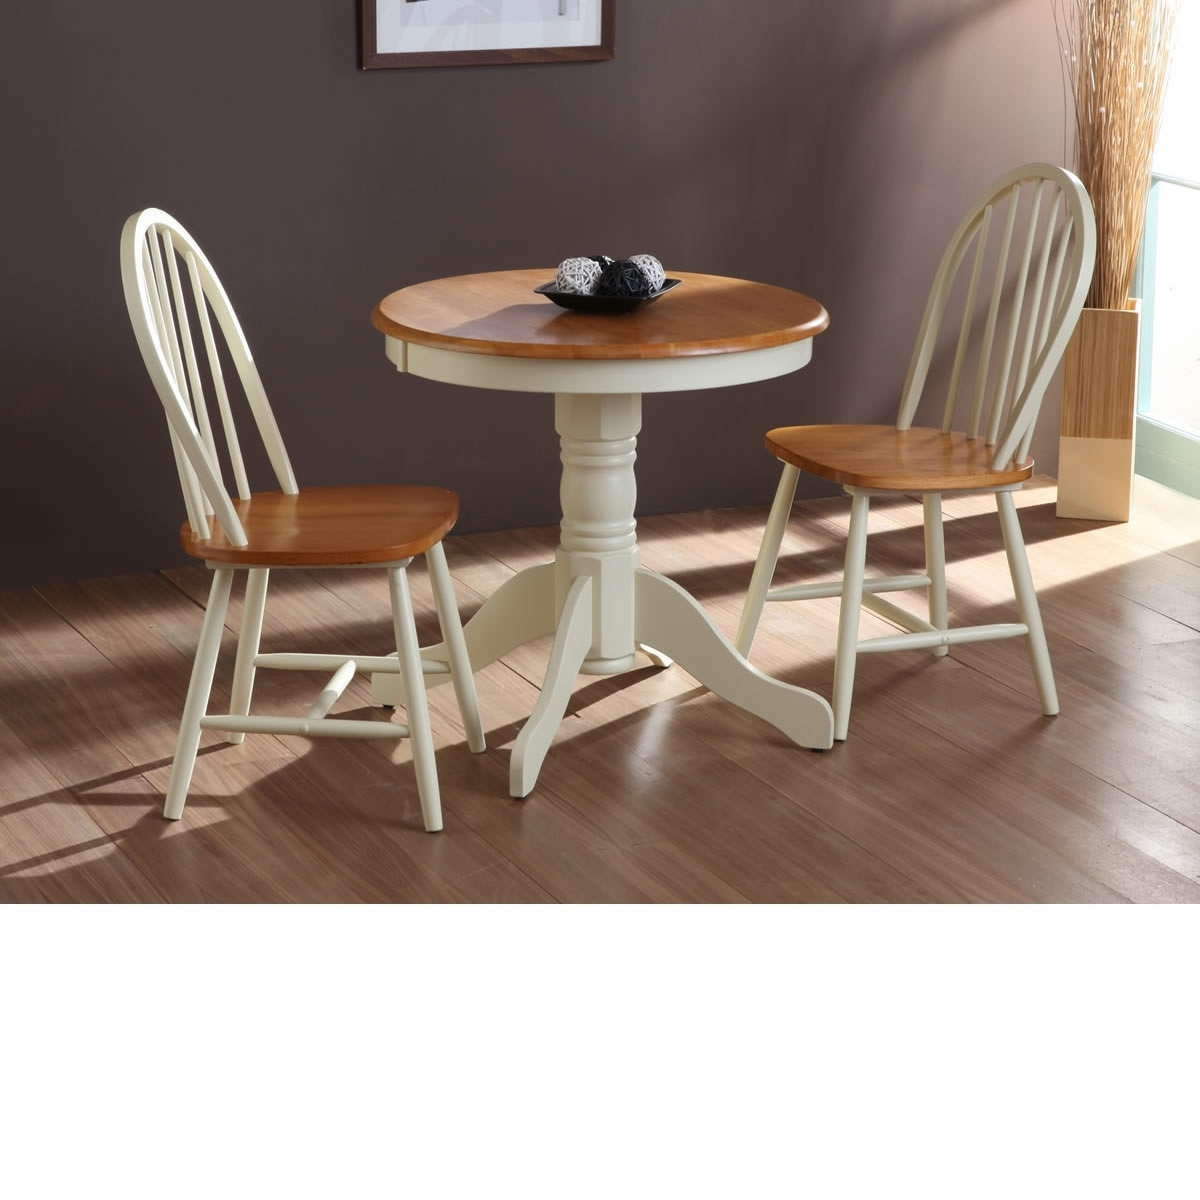 Well Liked Naro R Round 2 Seater Dining Table With Small Dining Table Regarding Two Person Dining Tables (View 25 of 25)